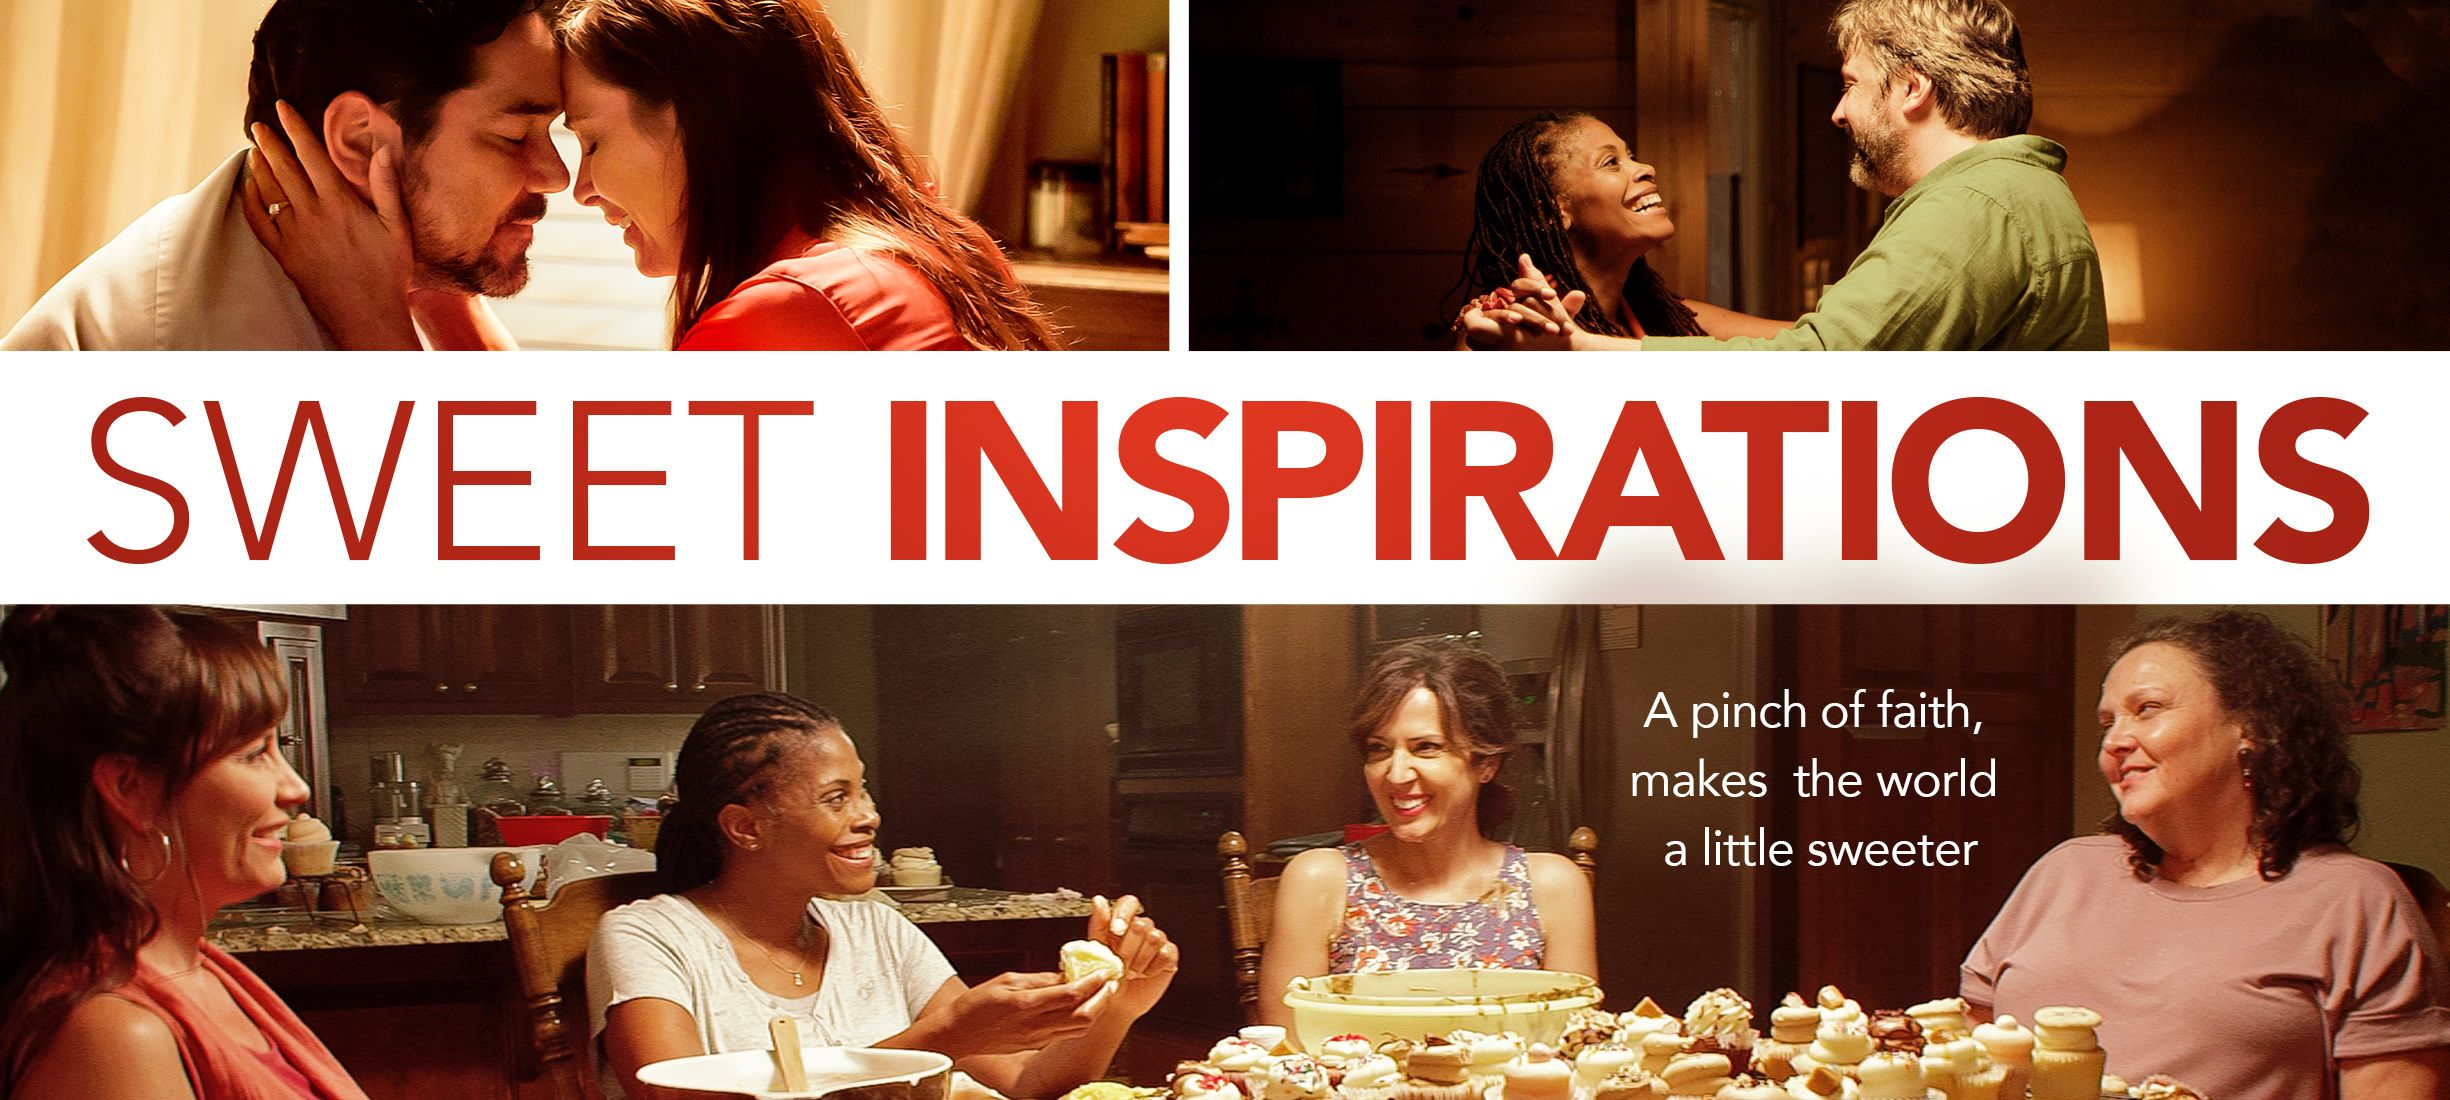 Watch Sweet Inspirations on Christian